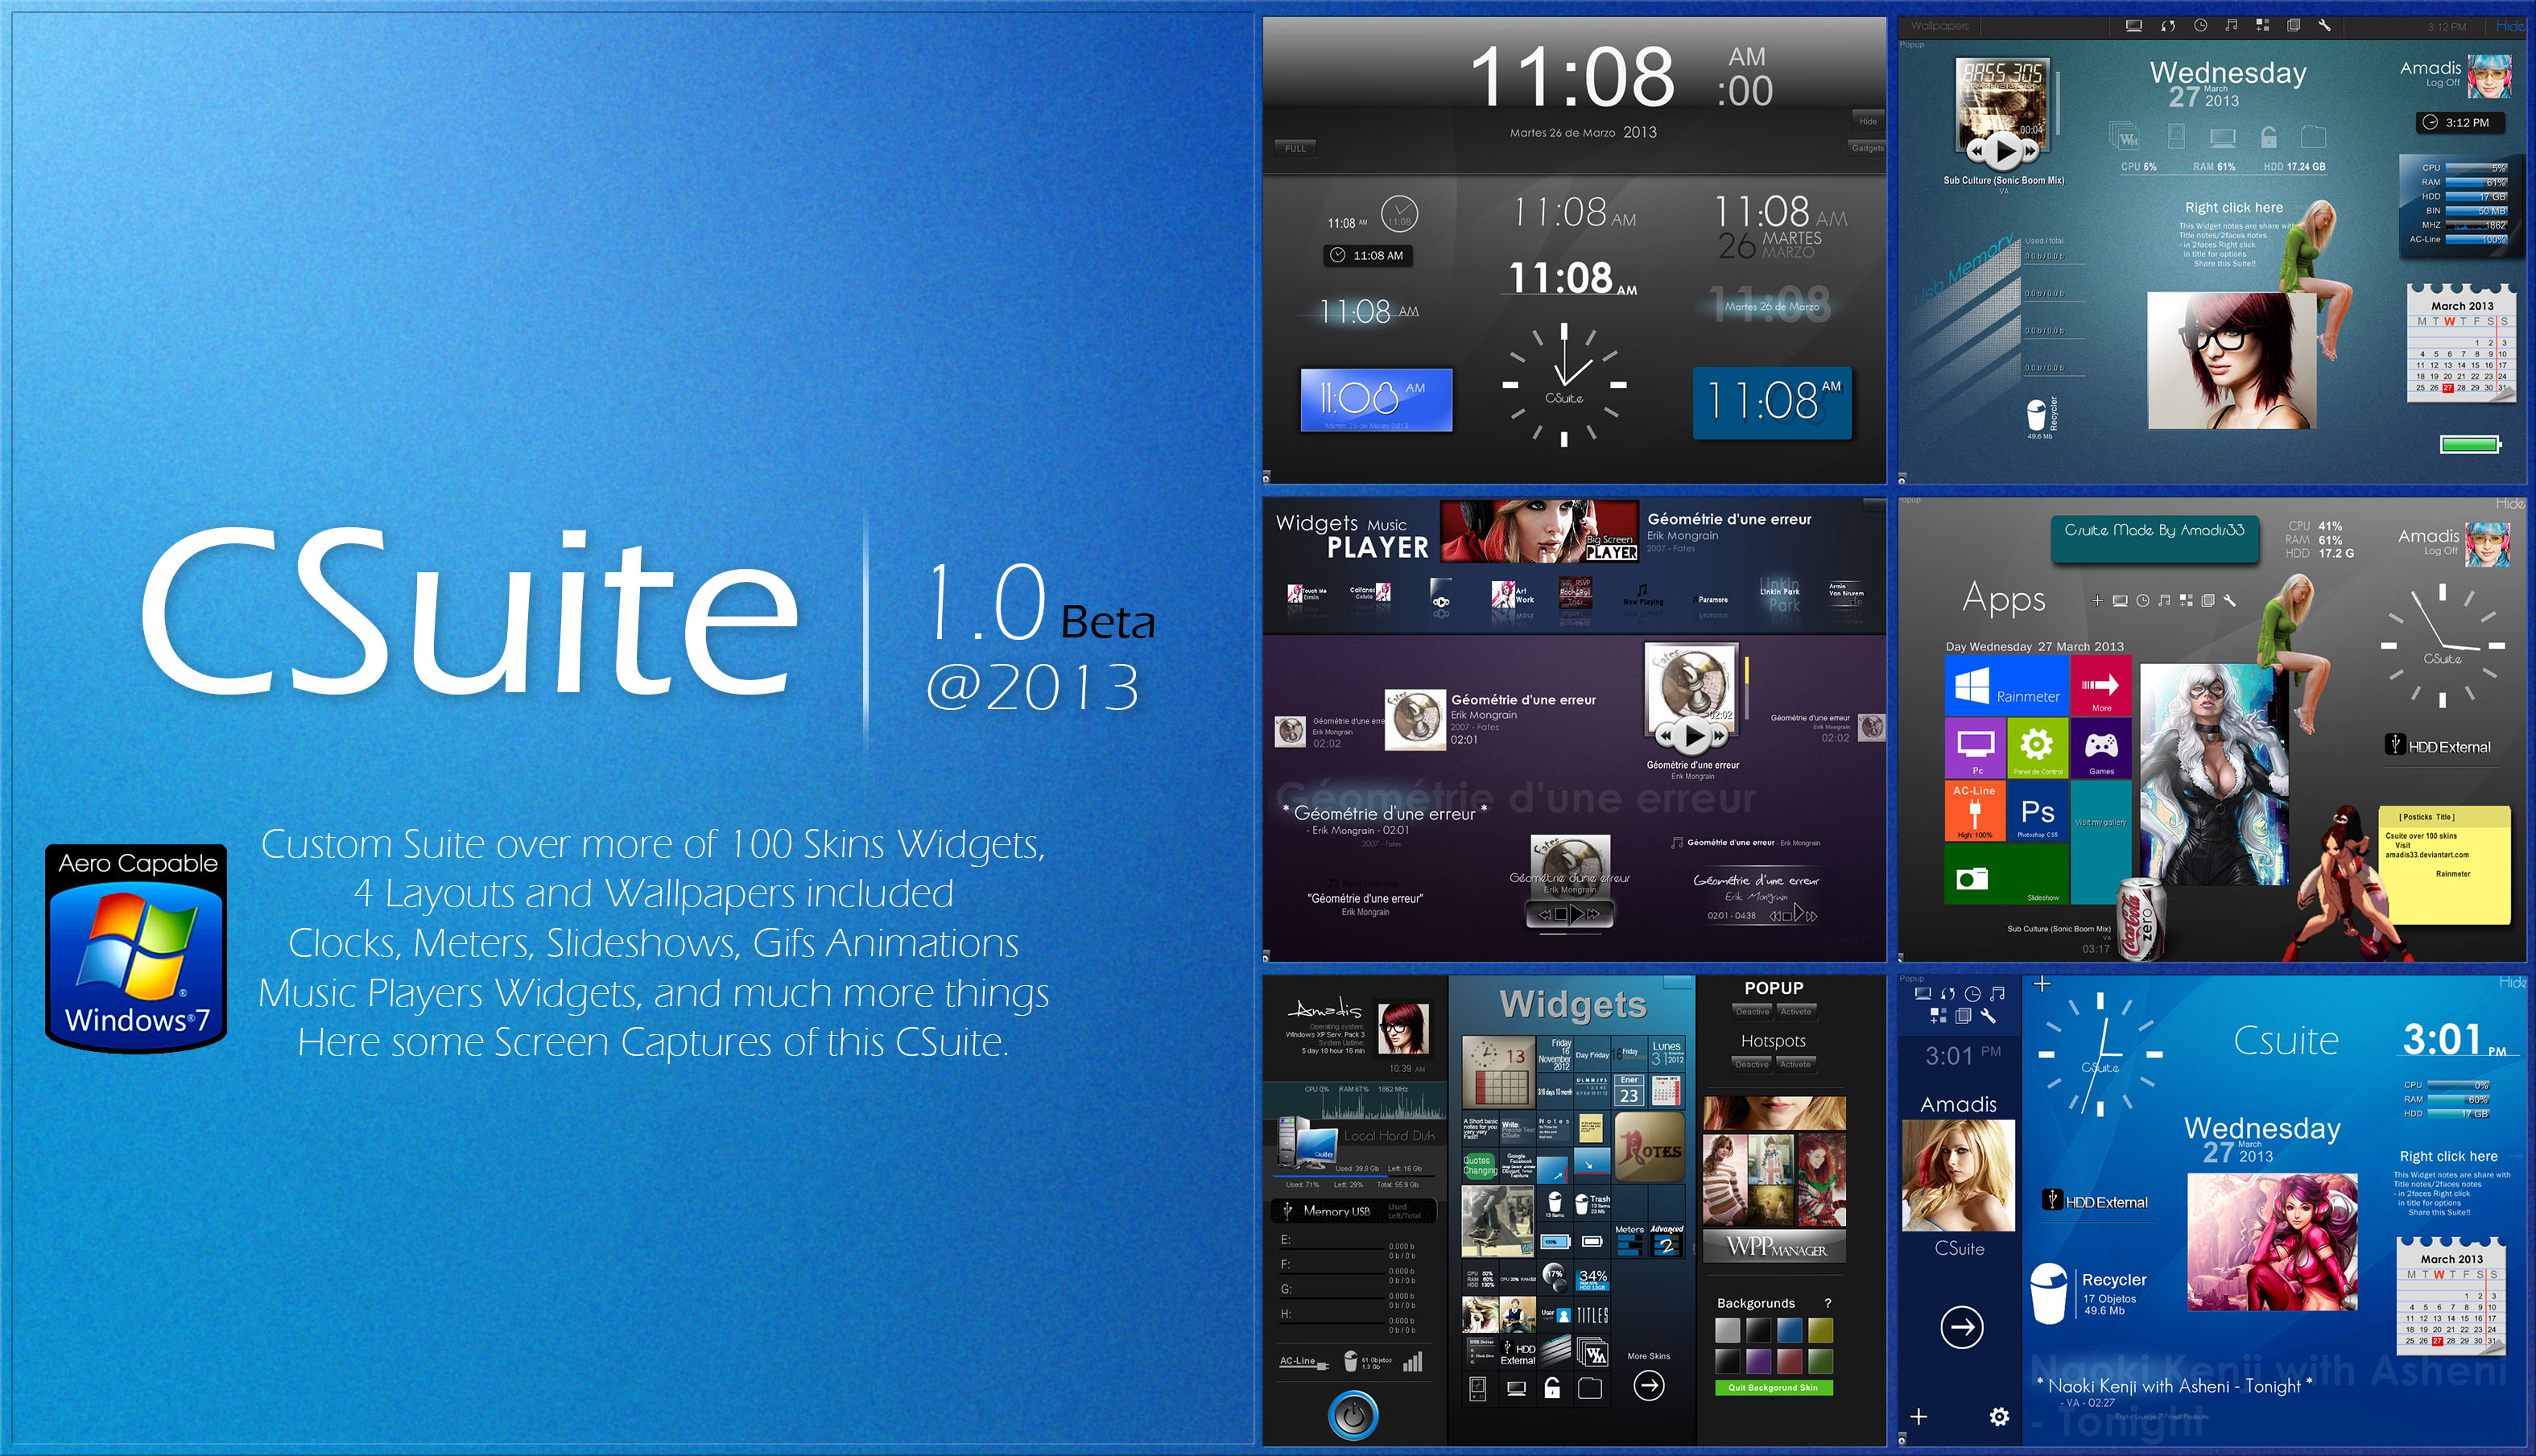 CSuite1.0 @2013beta by amadis33